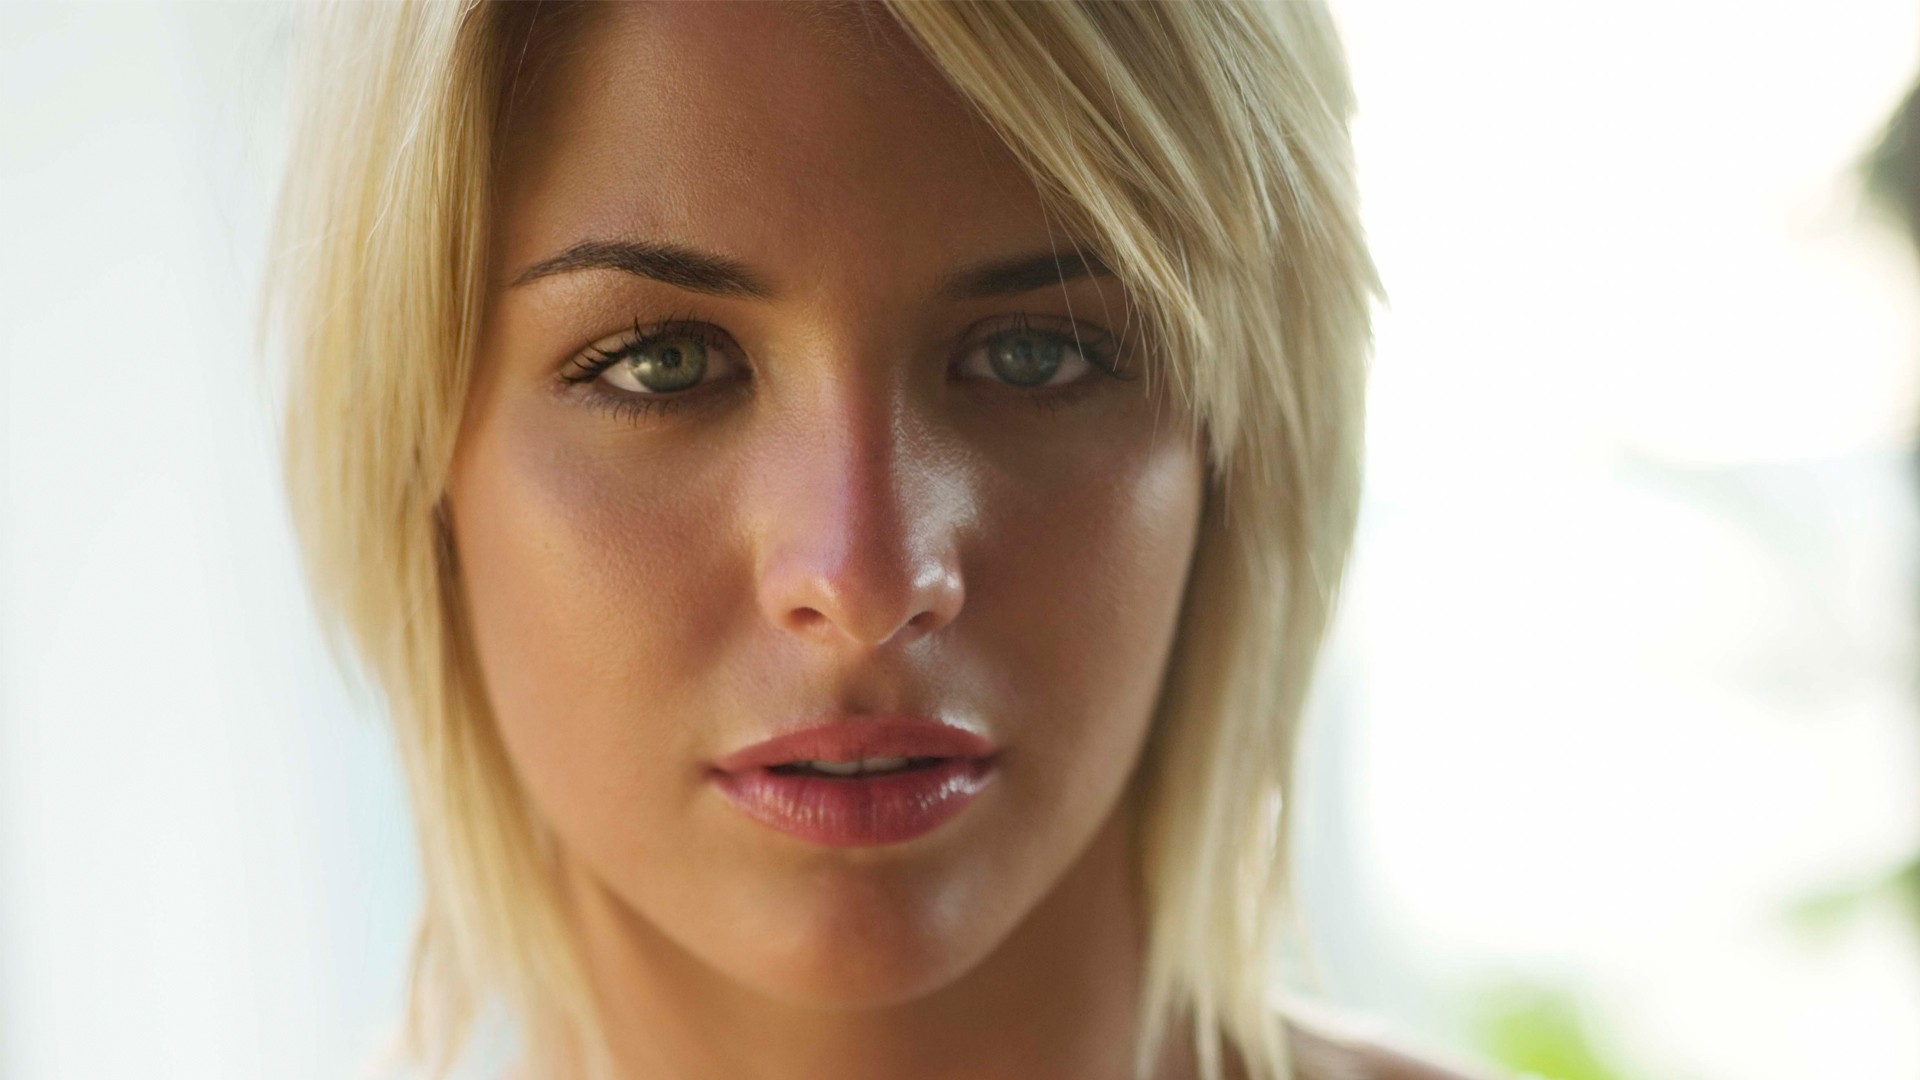 Messi Full Hd Wallpaper Gemma Atkinson Hd Wallpaper Background Image 1920x1080